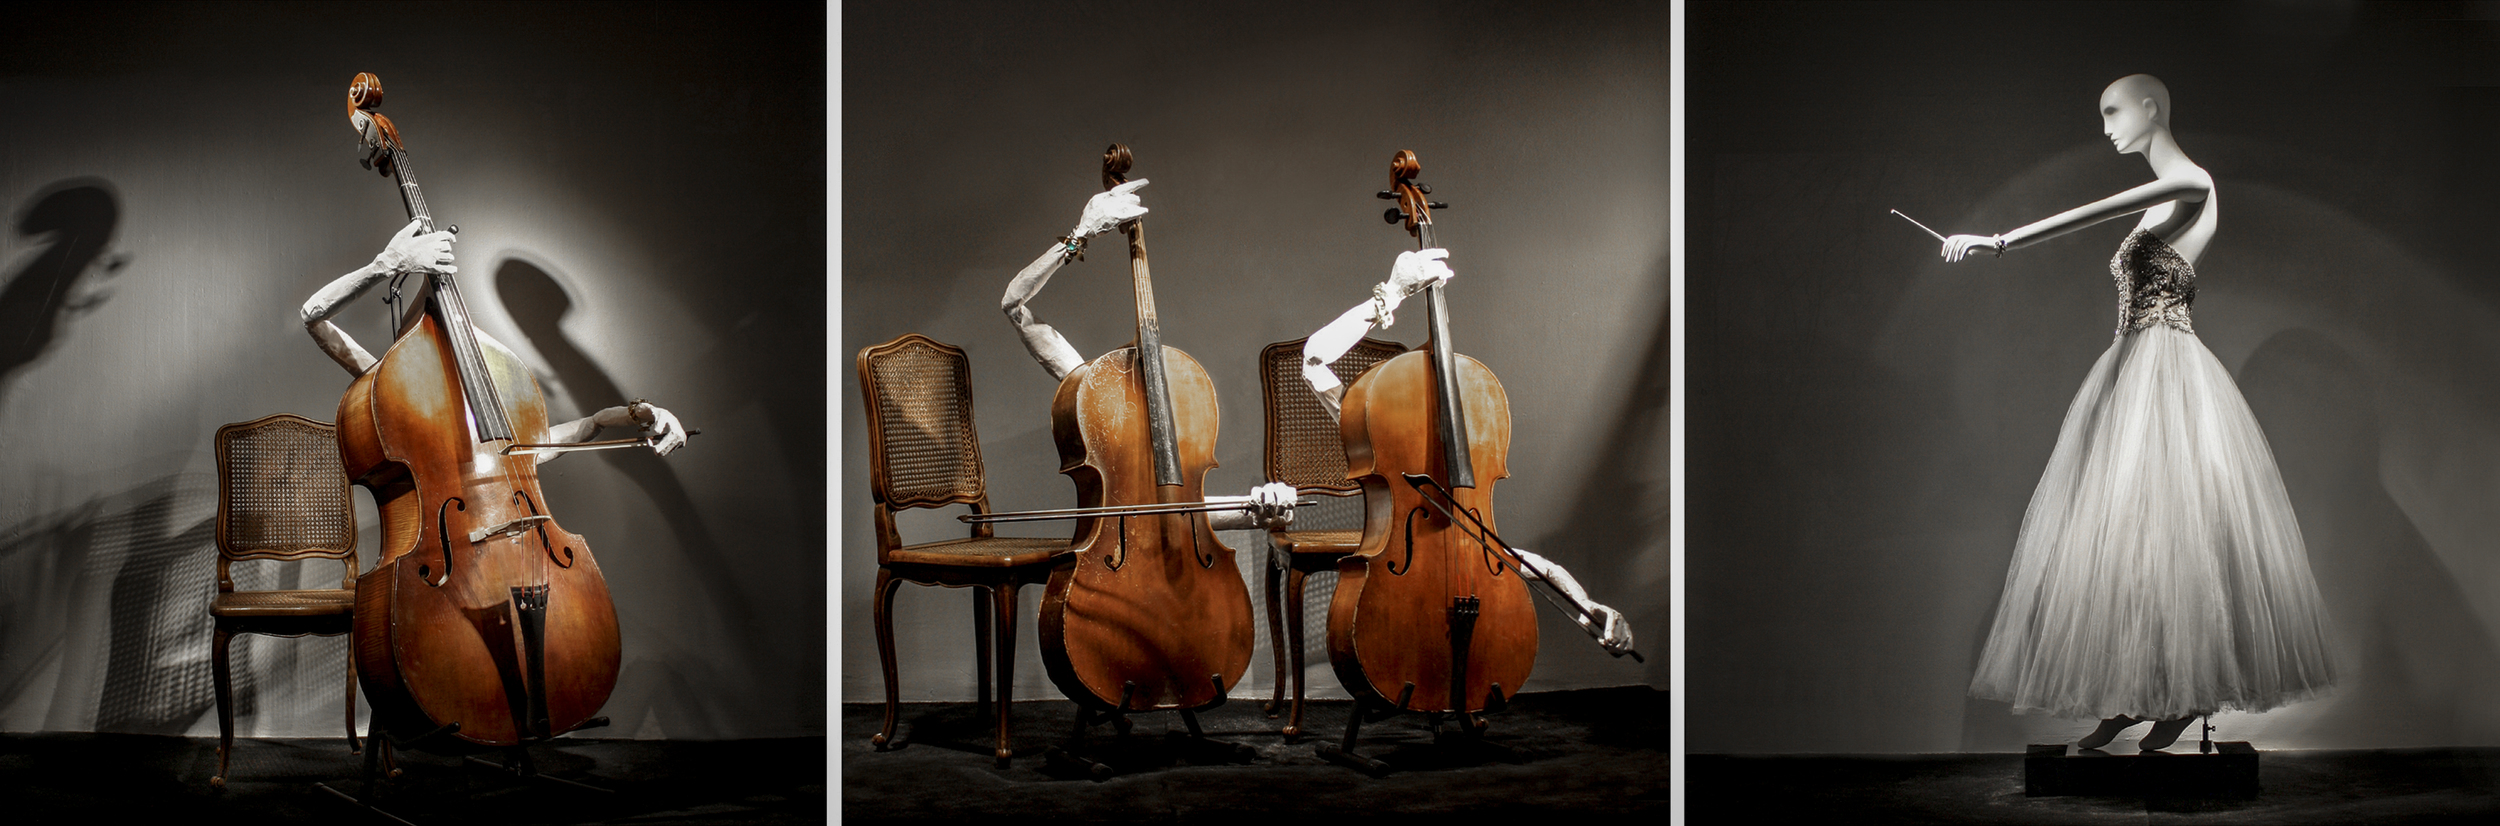 self playing orchestra3.JPG